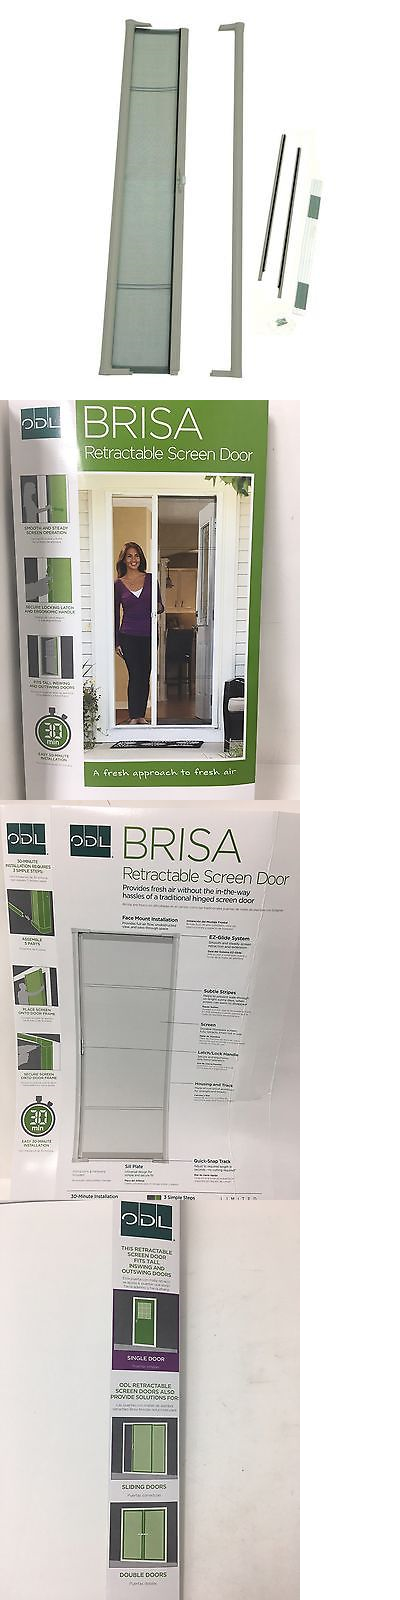 Odl Retractable Screen Door doors 85892: odl brisa sandstone 36 x 80 retractable screen door